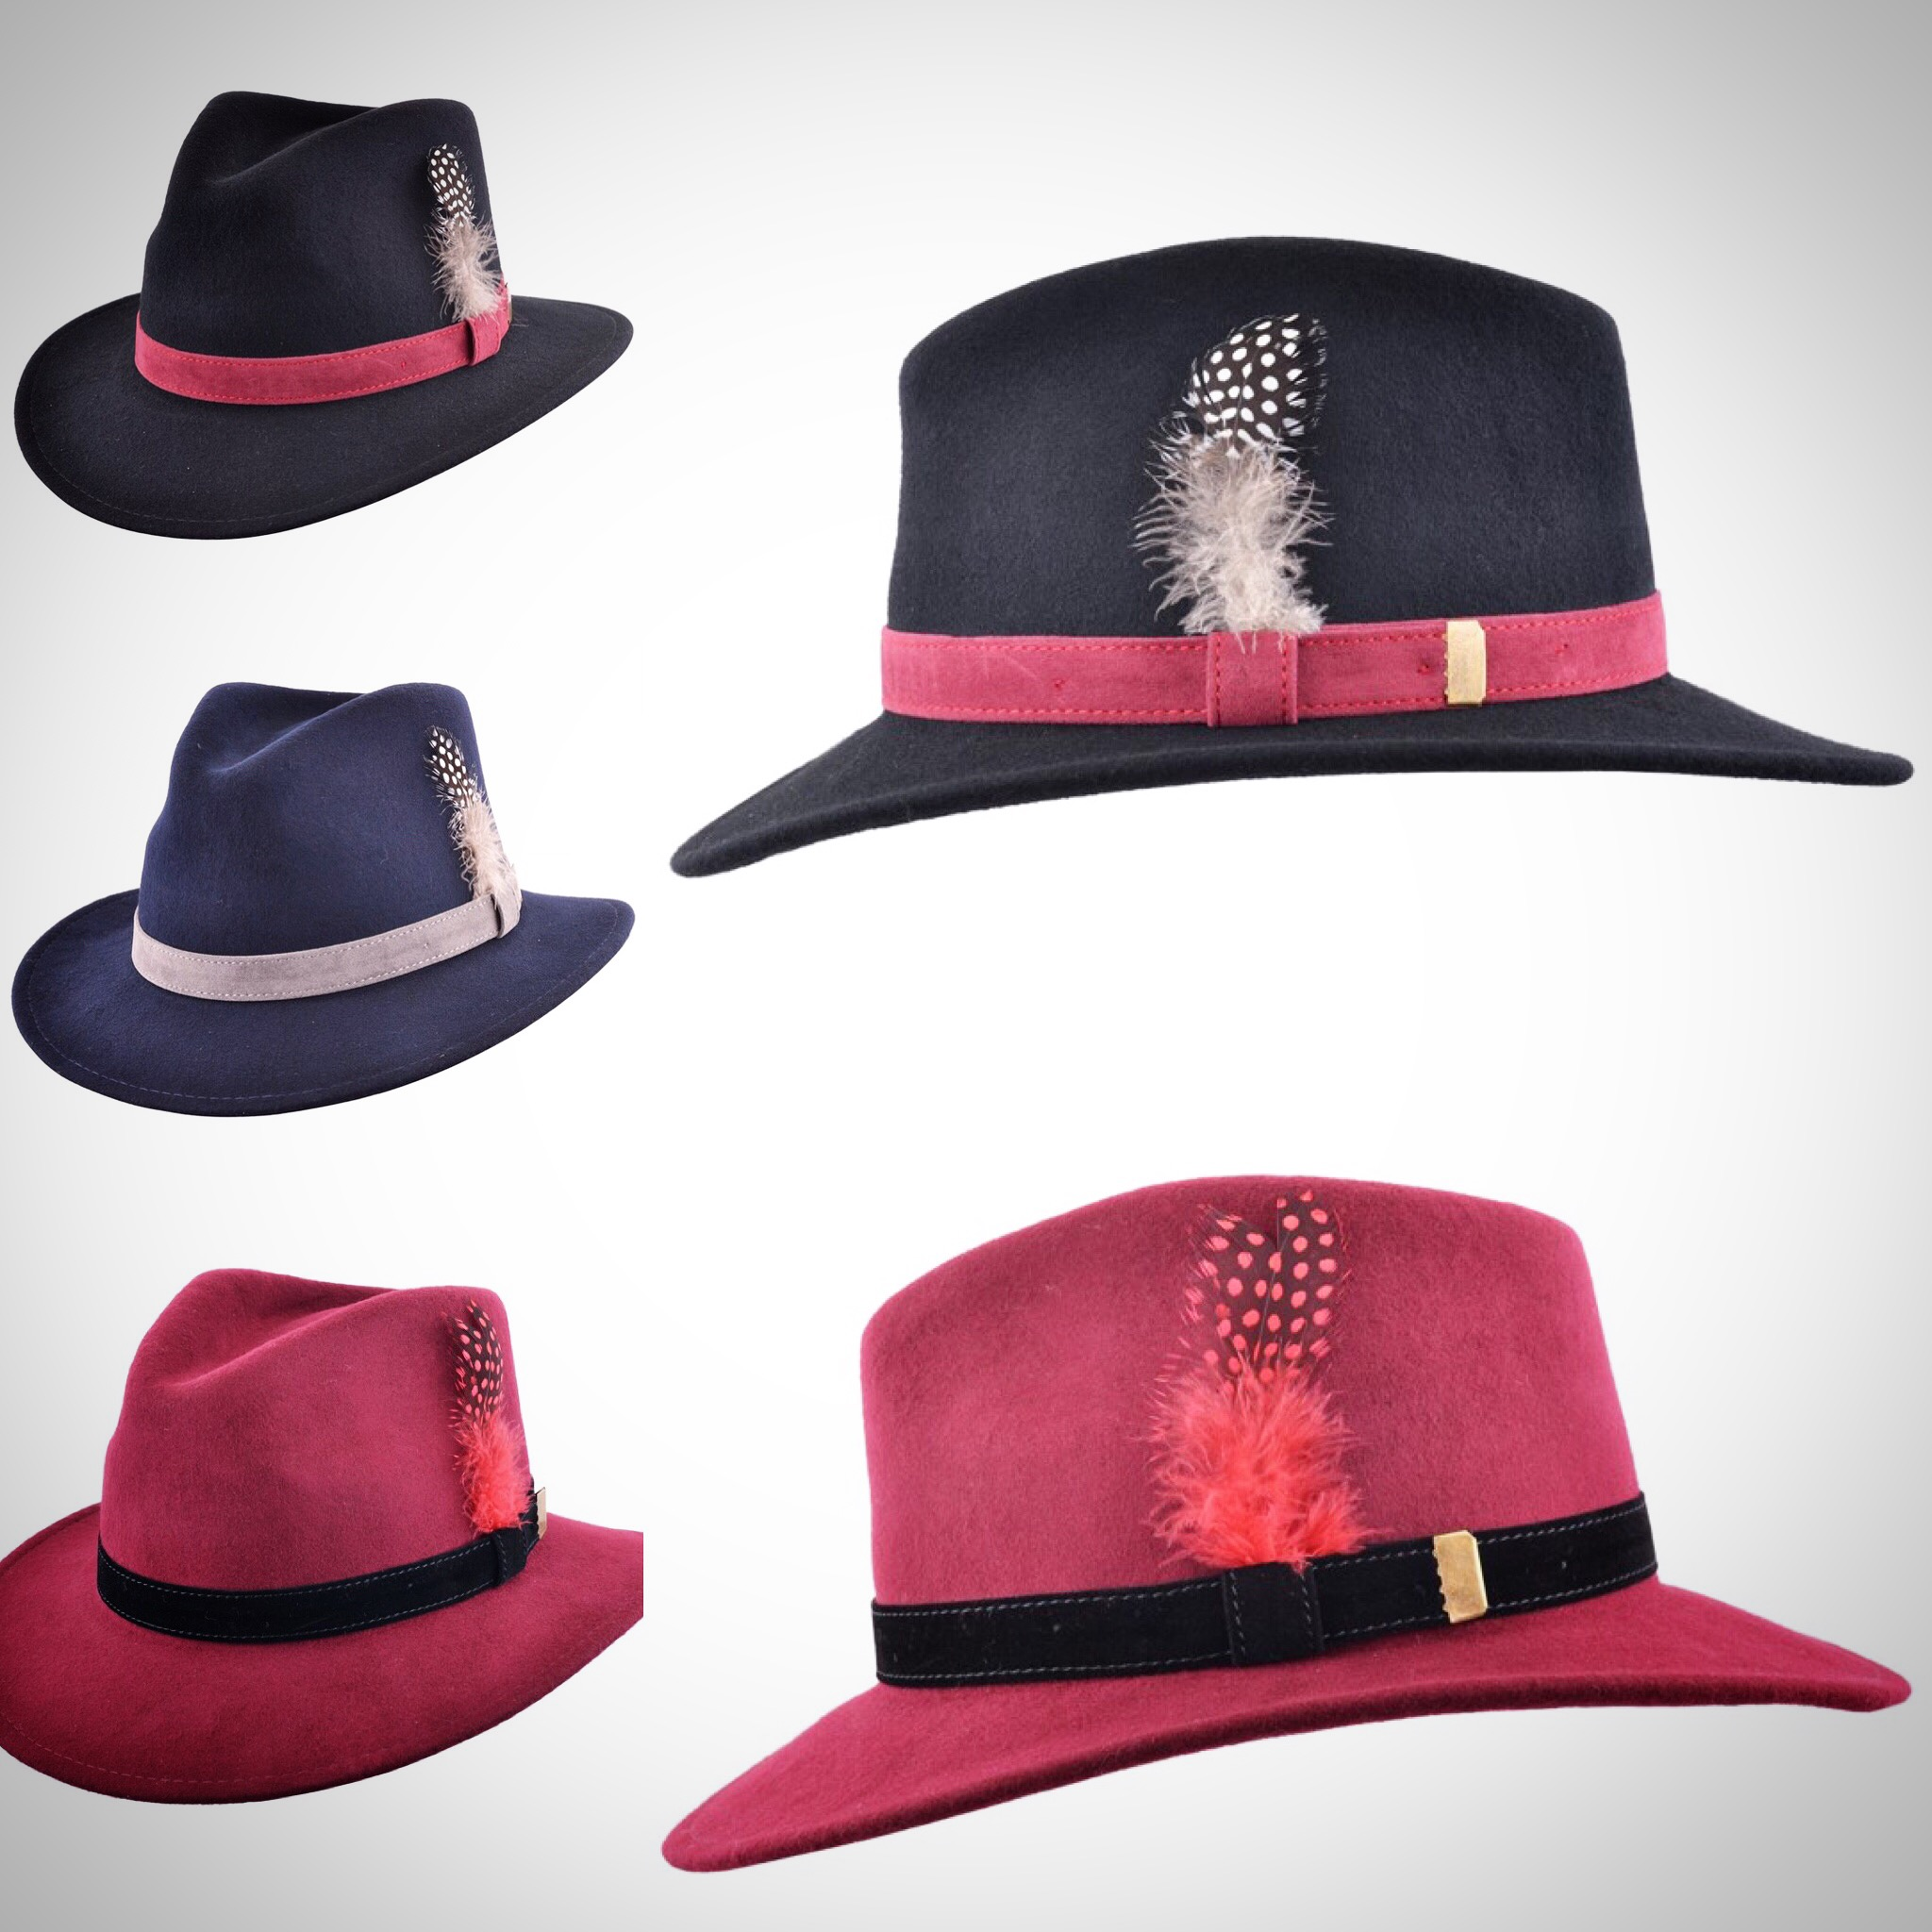 2a844a47753 Cotswold Country Hats - Google+